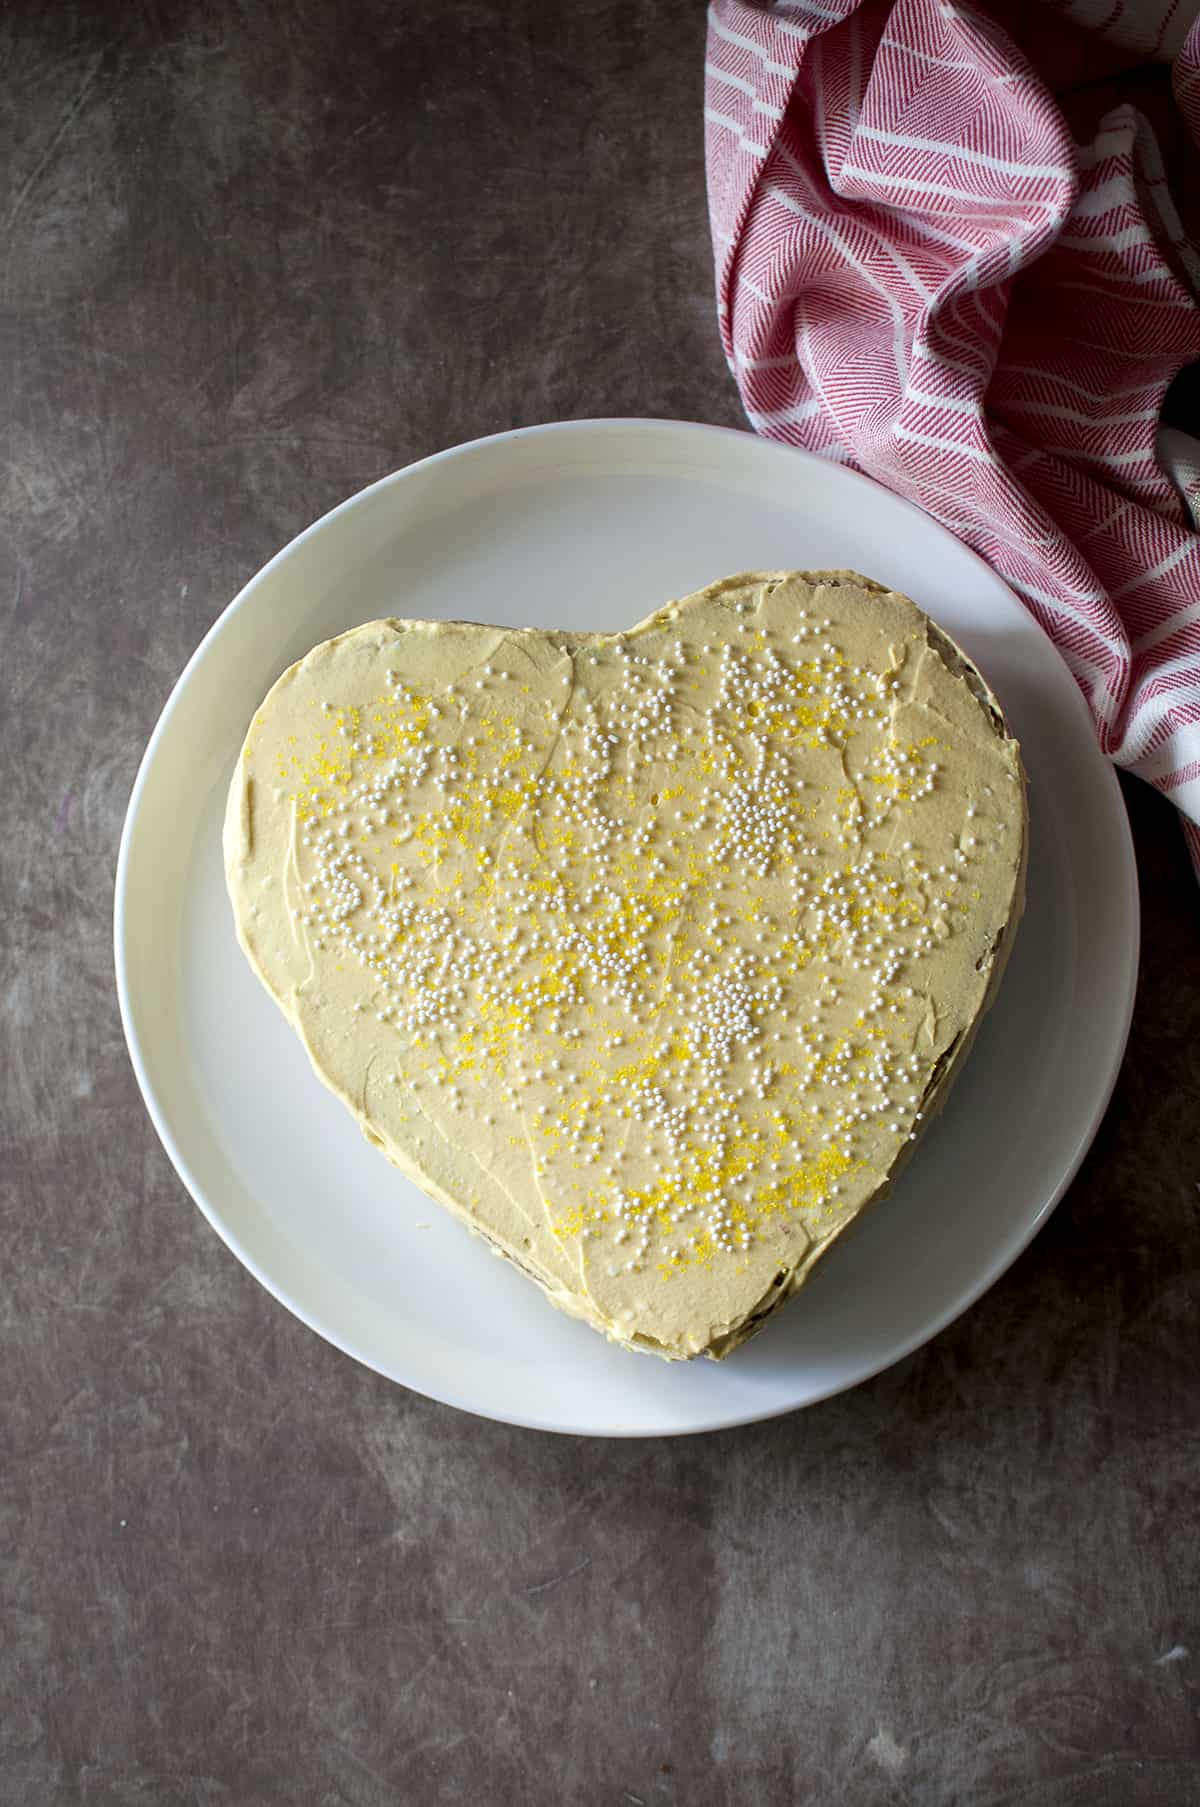 White plate with a heart shaped mango cake with yellow frosting and sprinkles